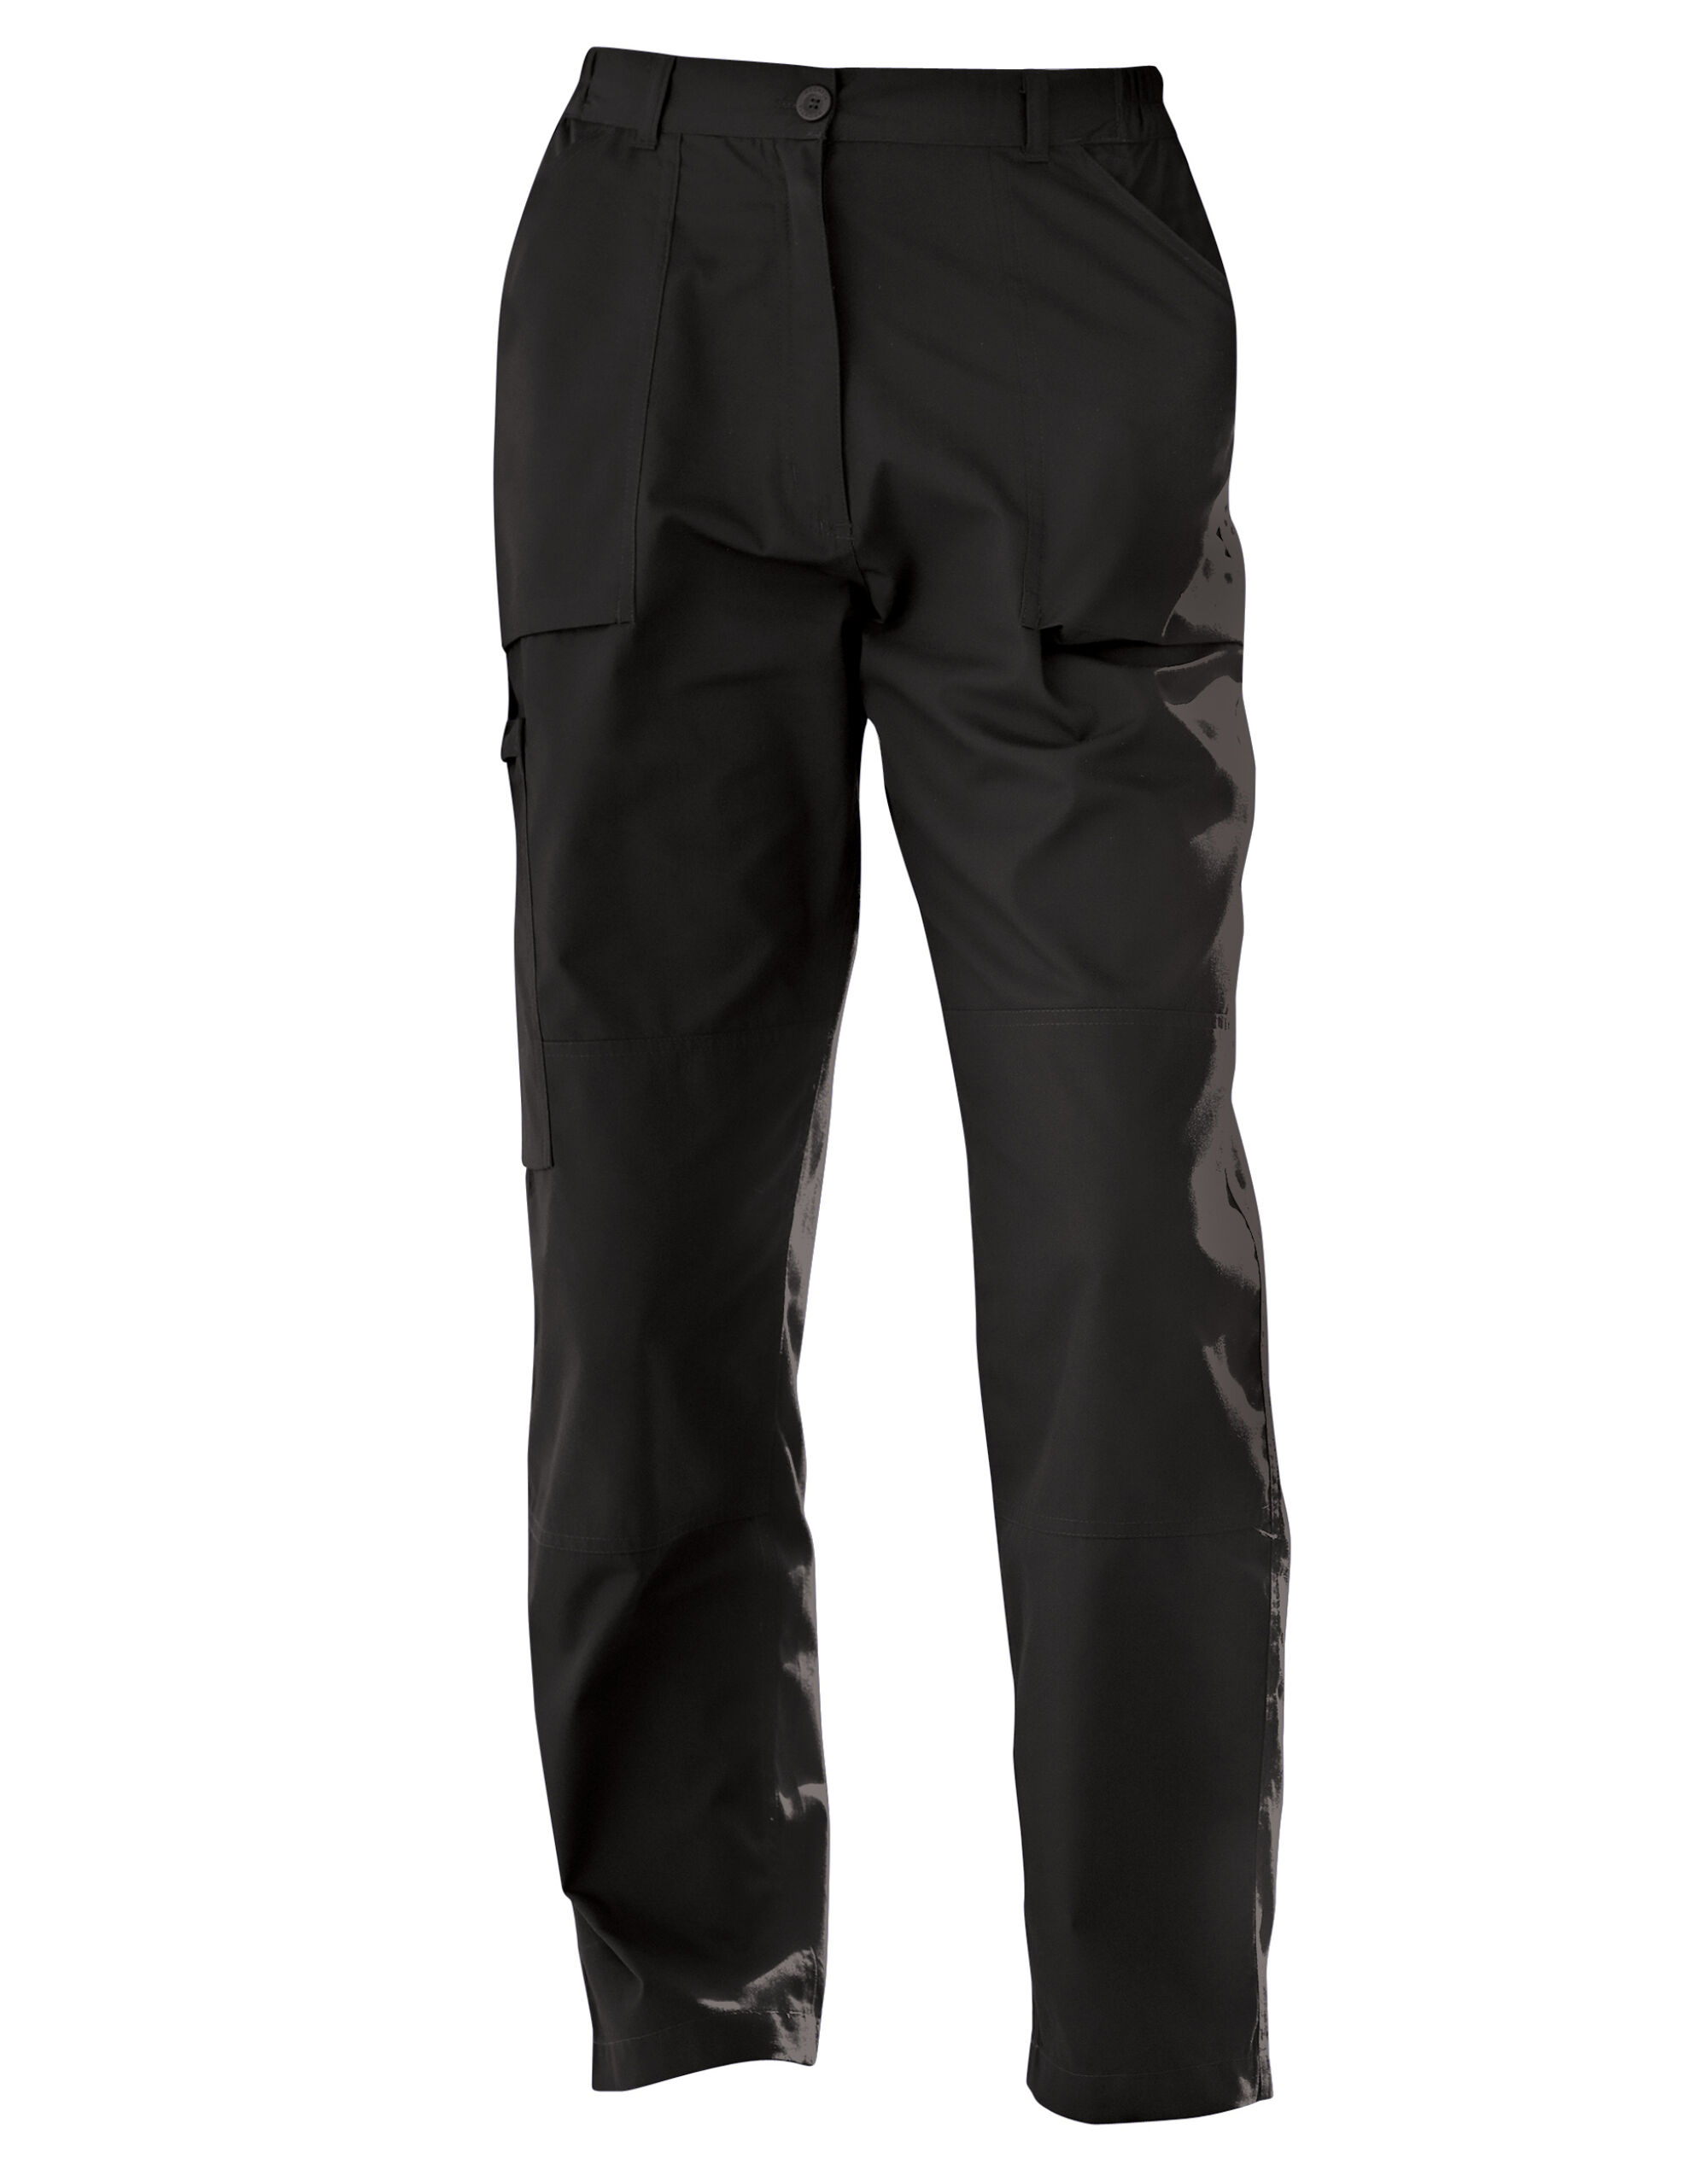 Ladies New Action Trouser (long)